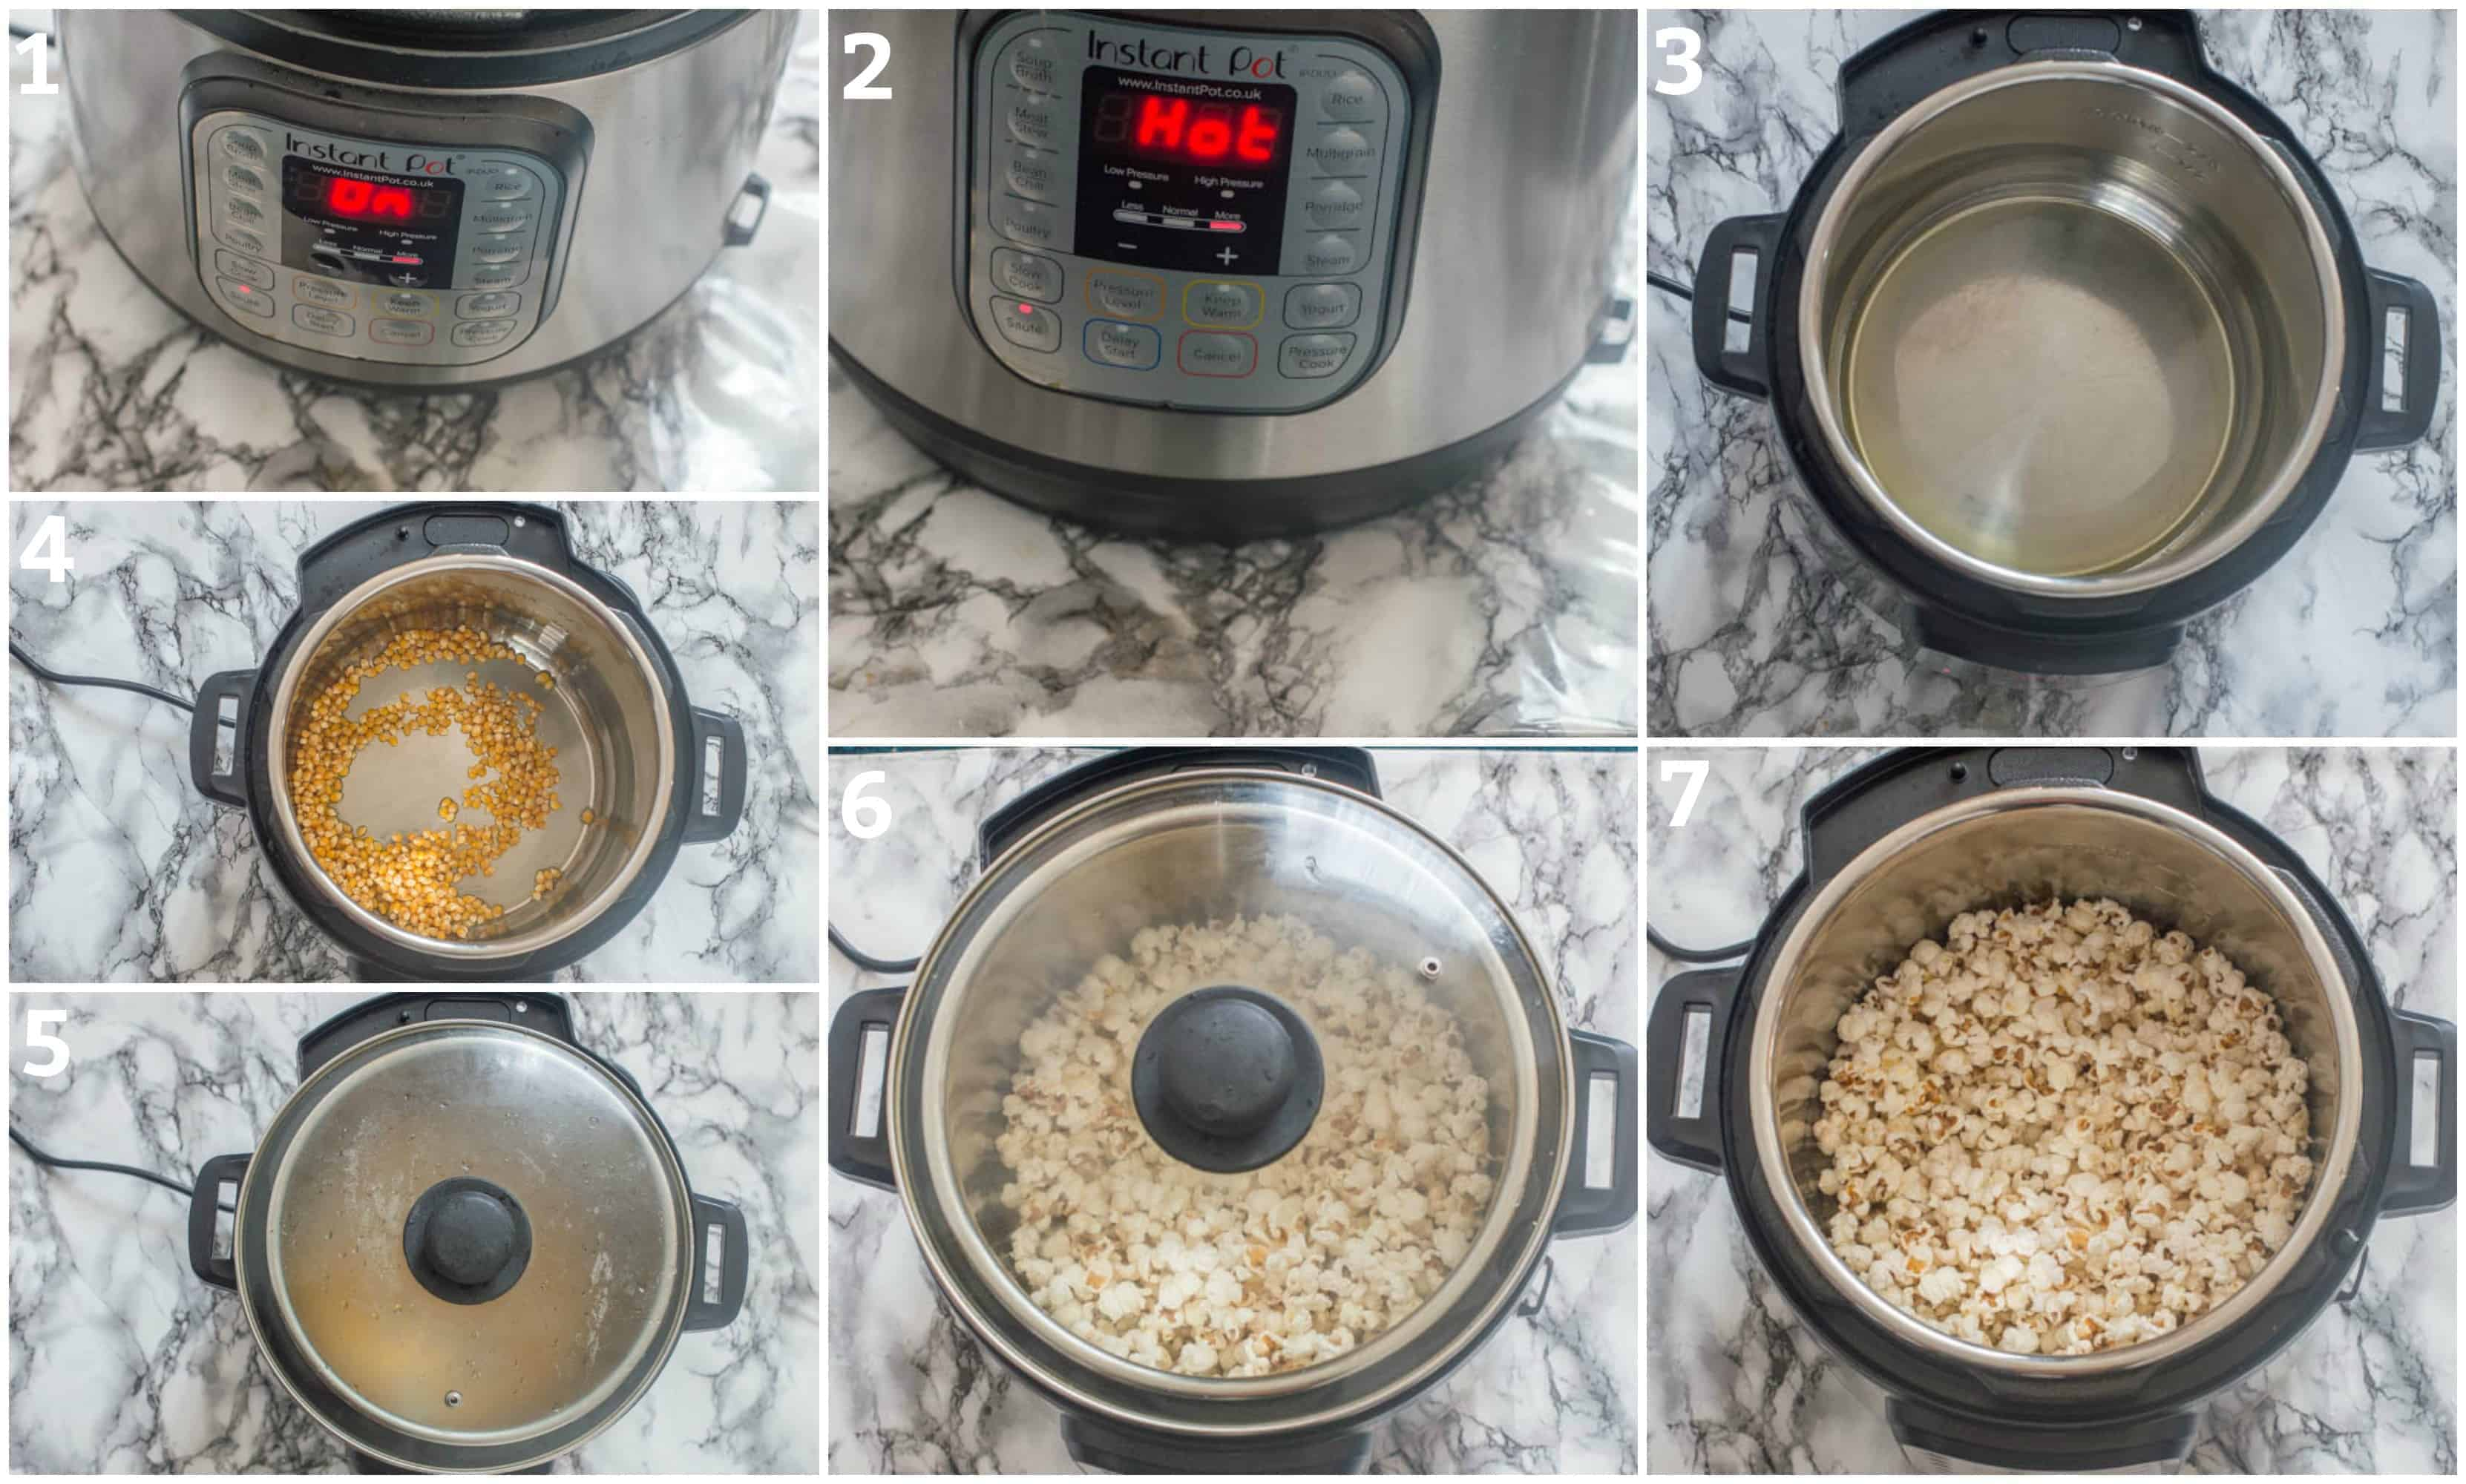 The steps for making instant pop popcorn from scratch